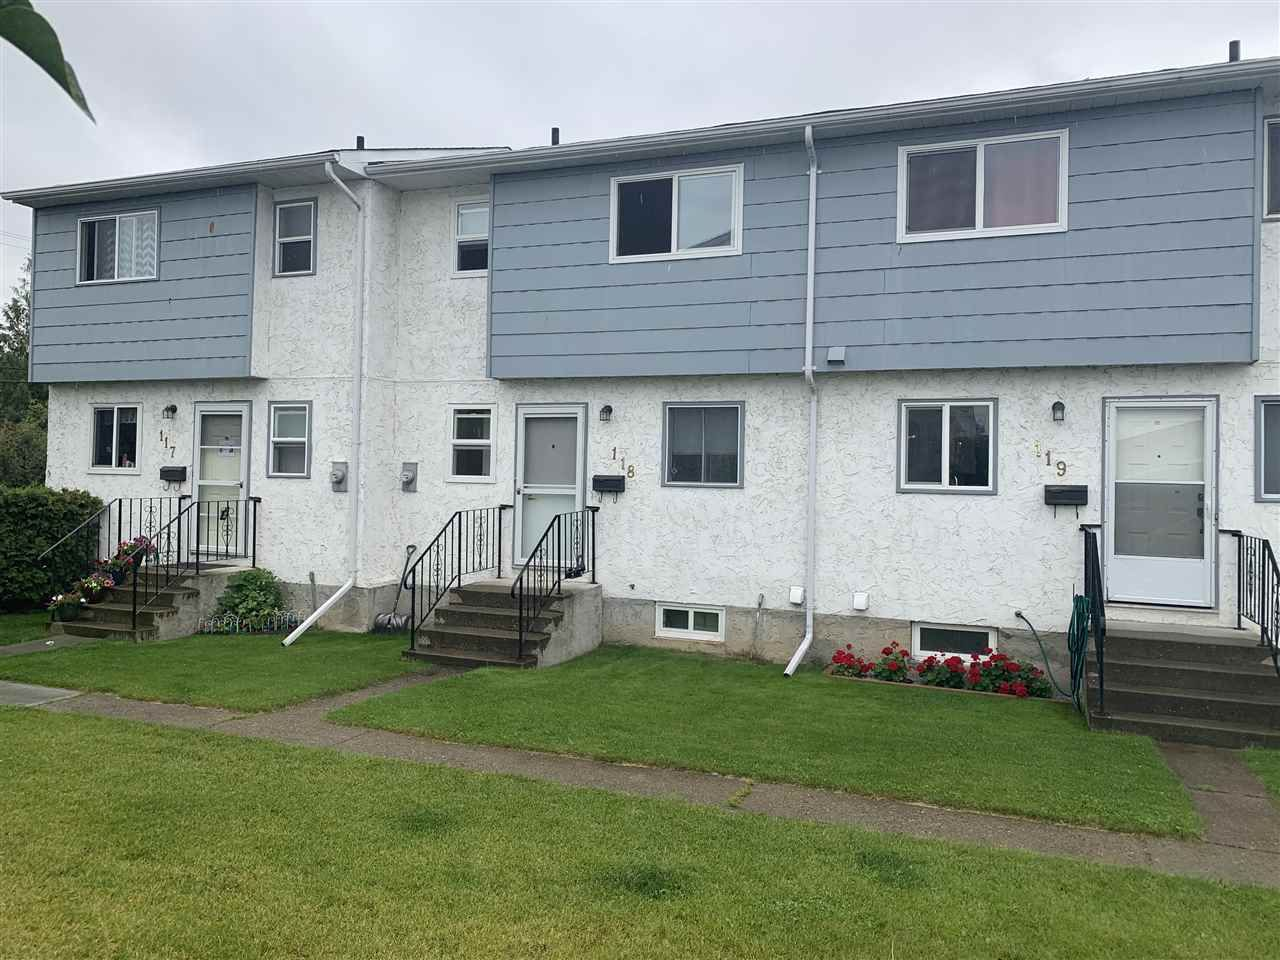 Main Photo: 118 4020 MCLEOD Avenue in Prince George: Highglen Townhouse for sale (PG City West (Zone 71))  : MLS®# R2487071